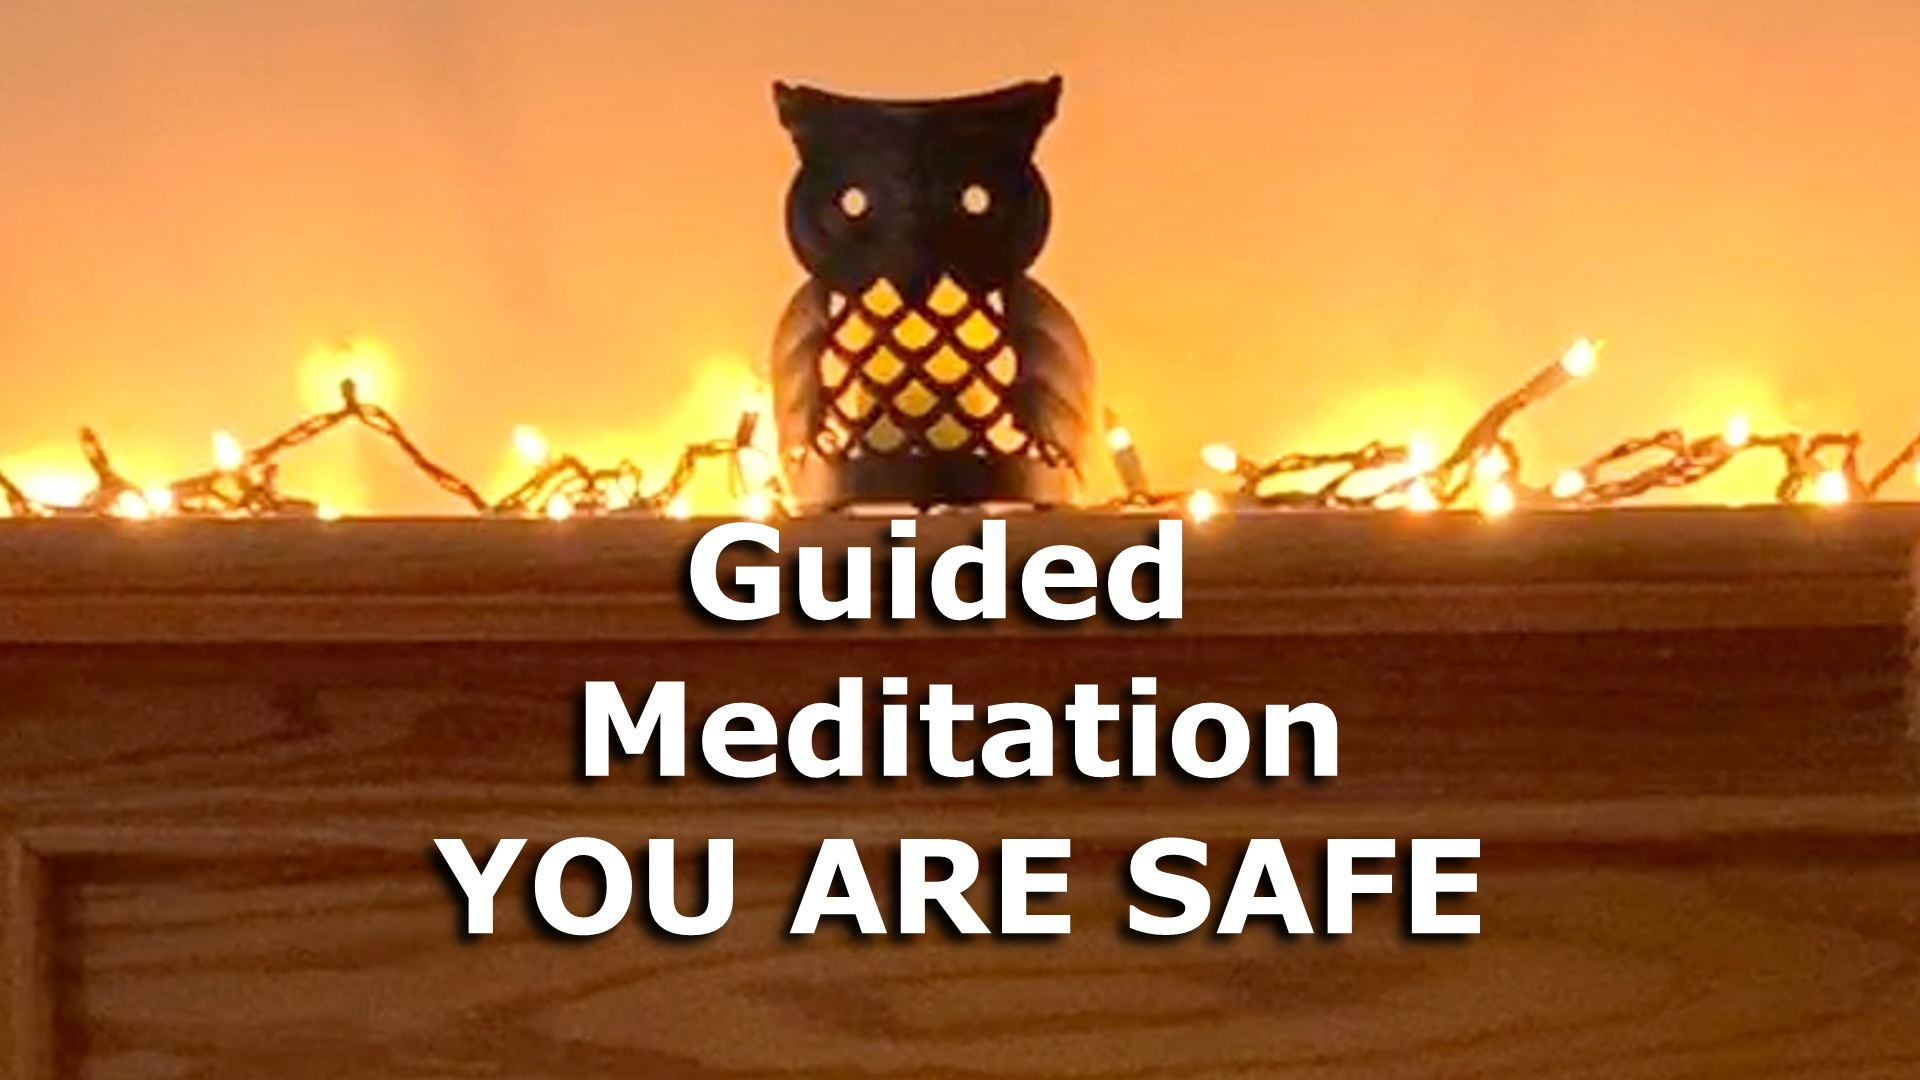 5 Minute Guided Meditation You Are Safe